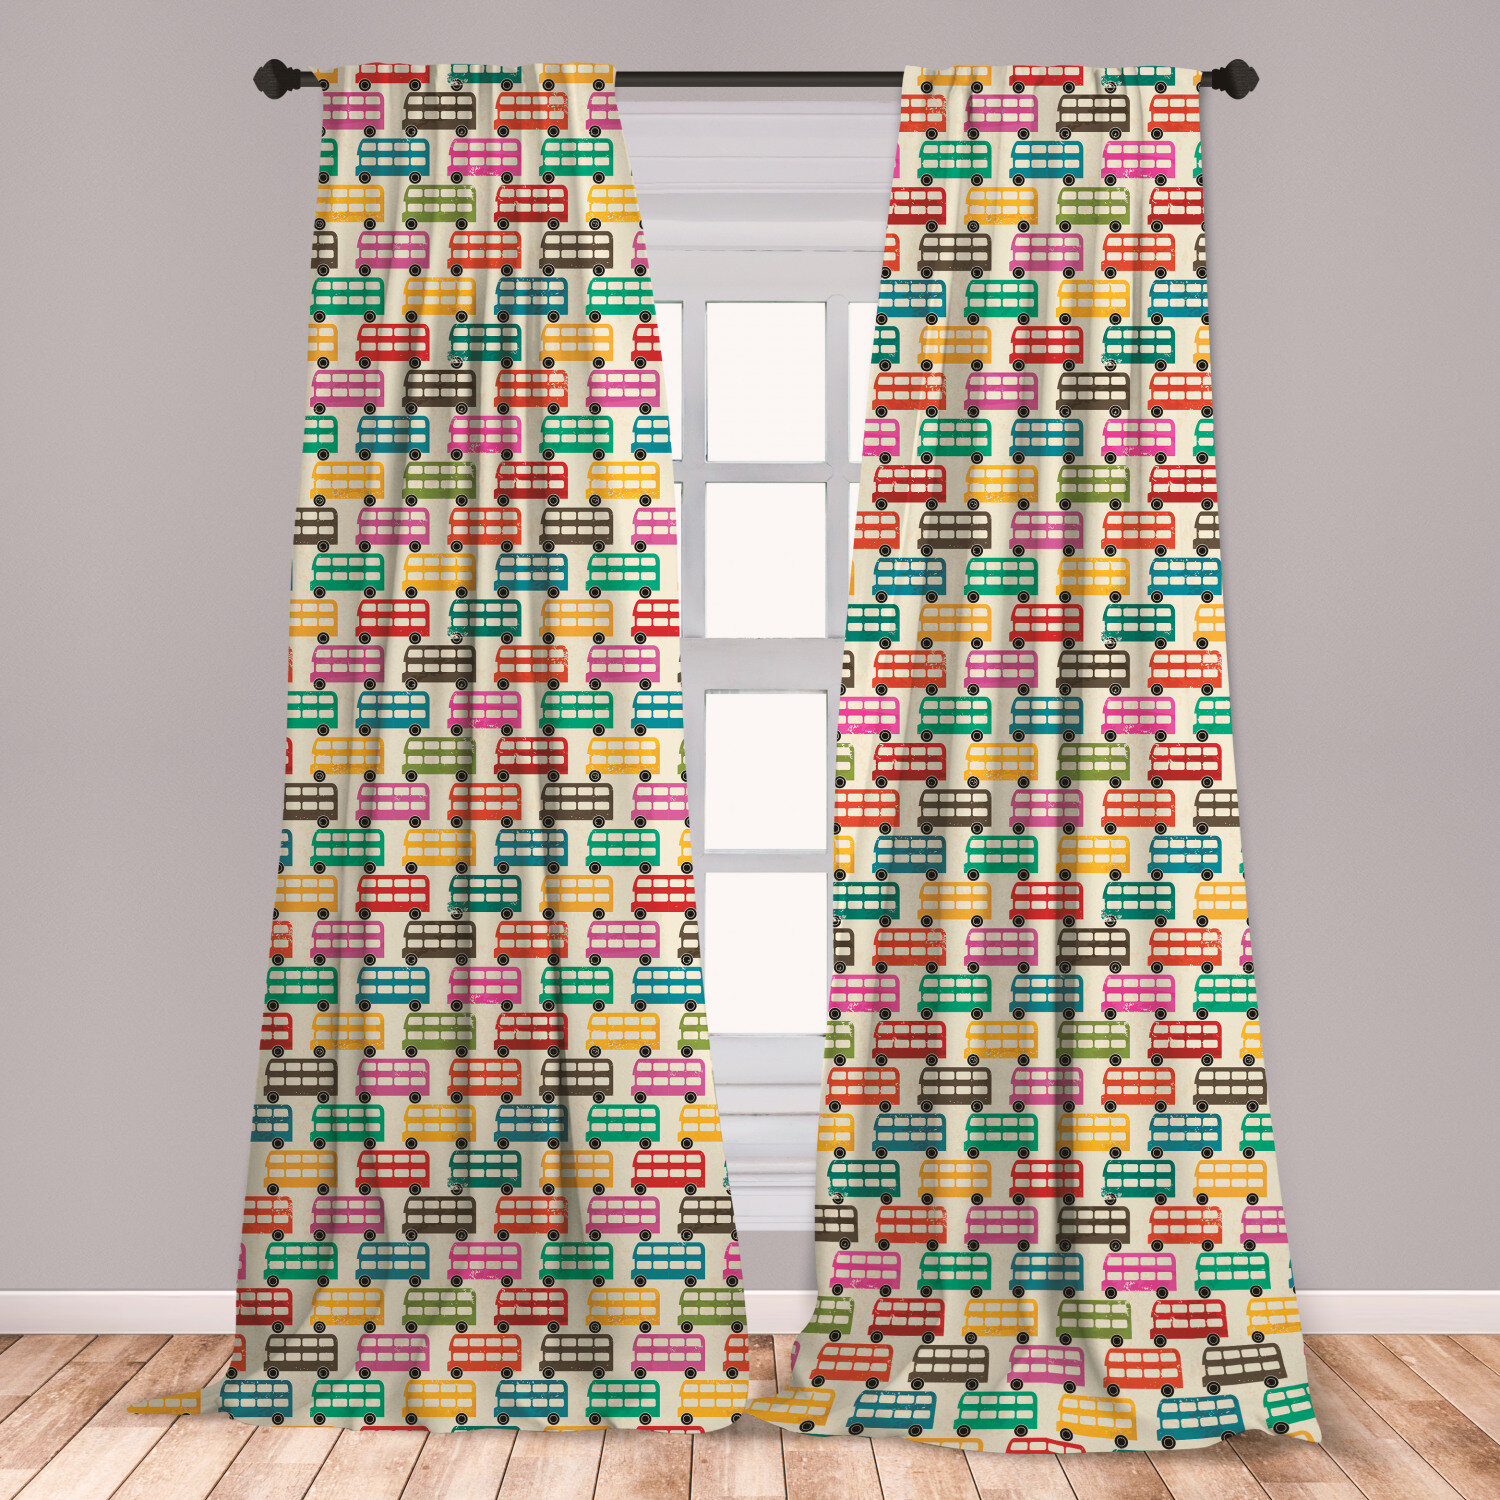 East Urban Home Ambesonne Colorful Curtains London S Famous Double Decker Bus Silhouettes Pattern With Worn Out Background Window Treatments 2 Panel Set For Living Room Bedroom Decor 56 X 63 Multicolor Room